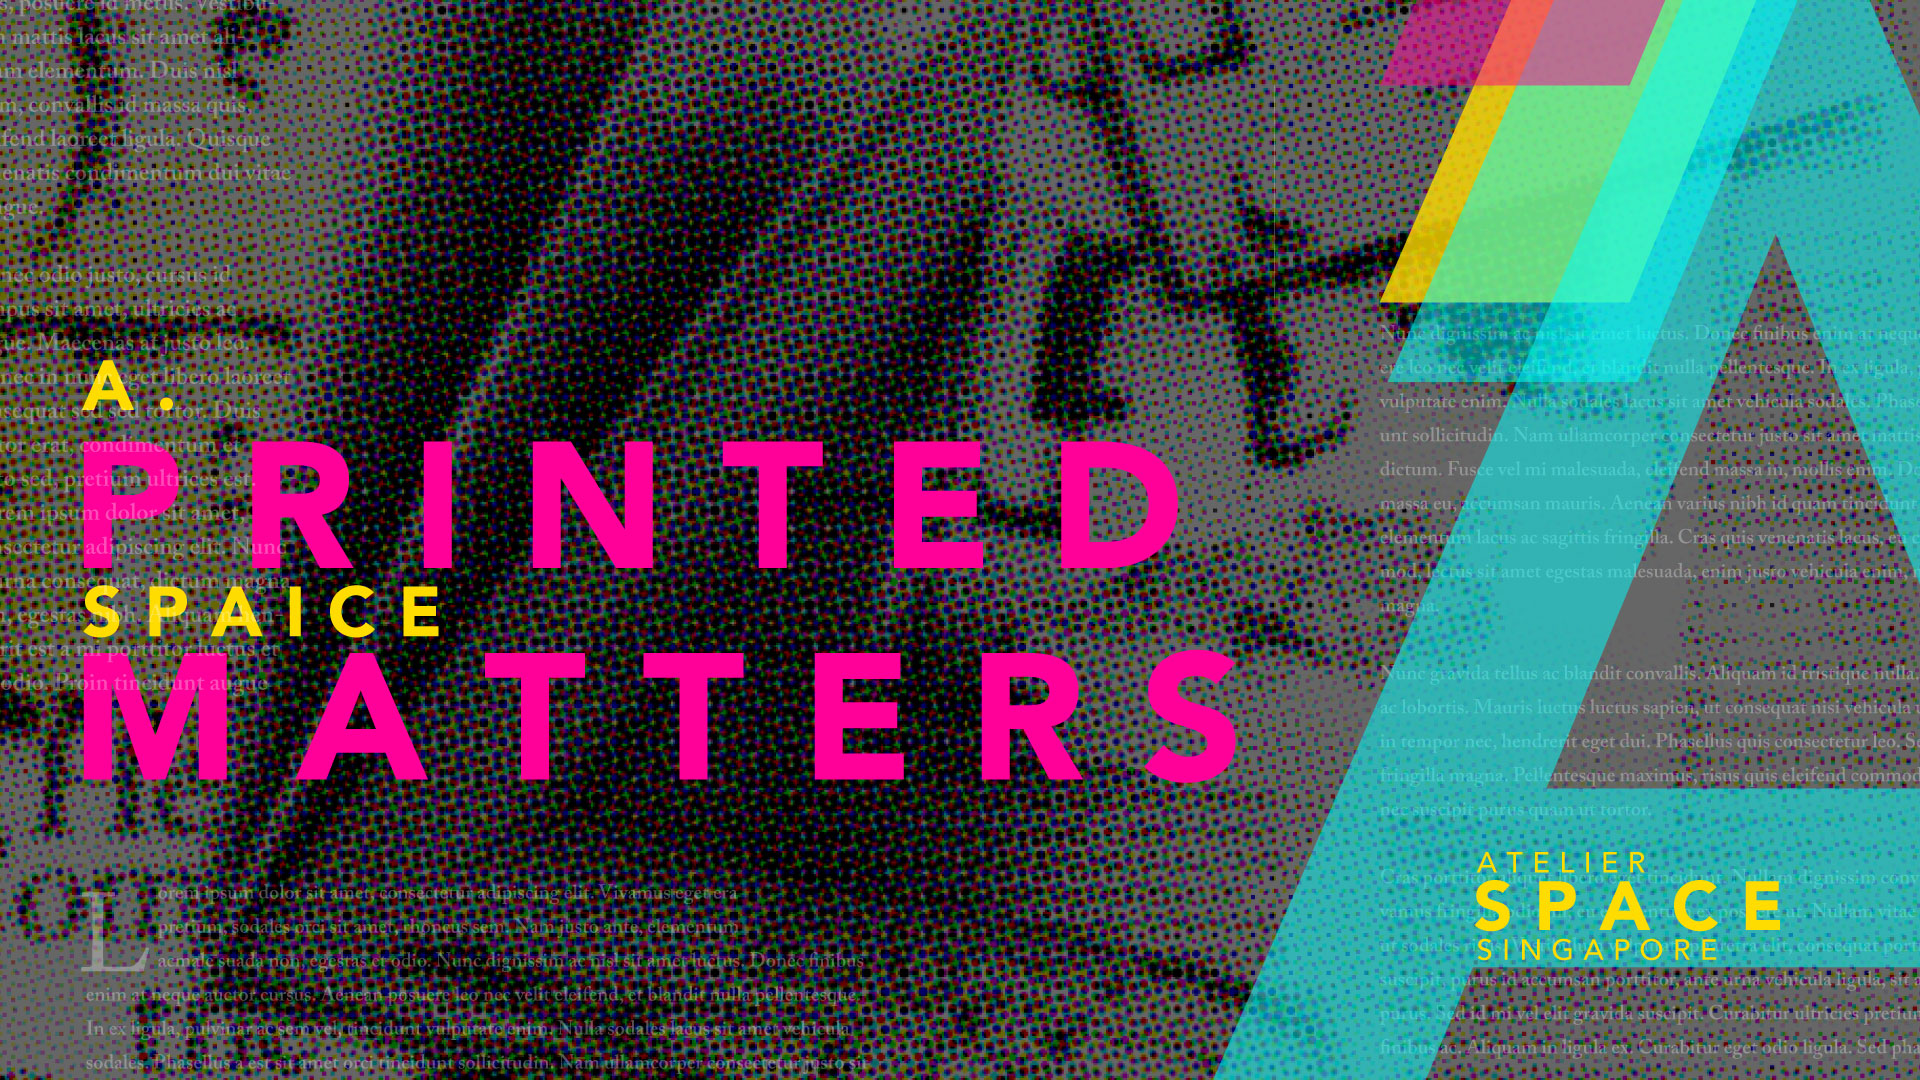 Printed-Matters-Atelier-Space-Singapore